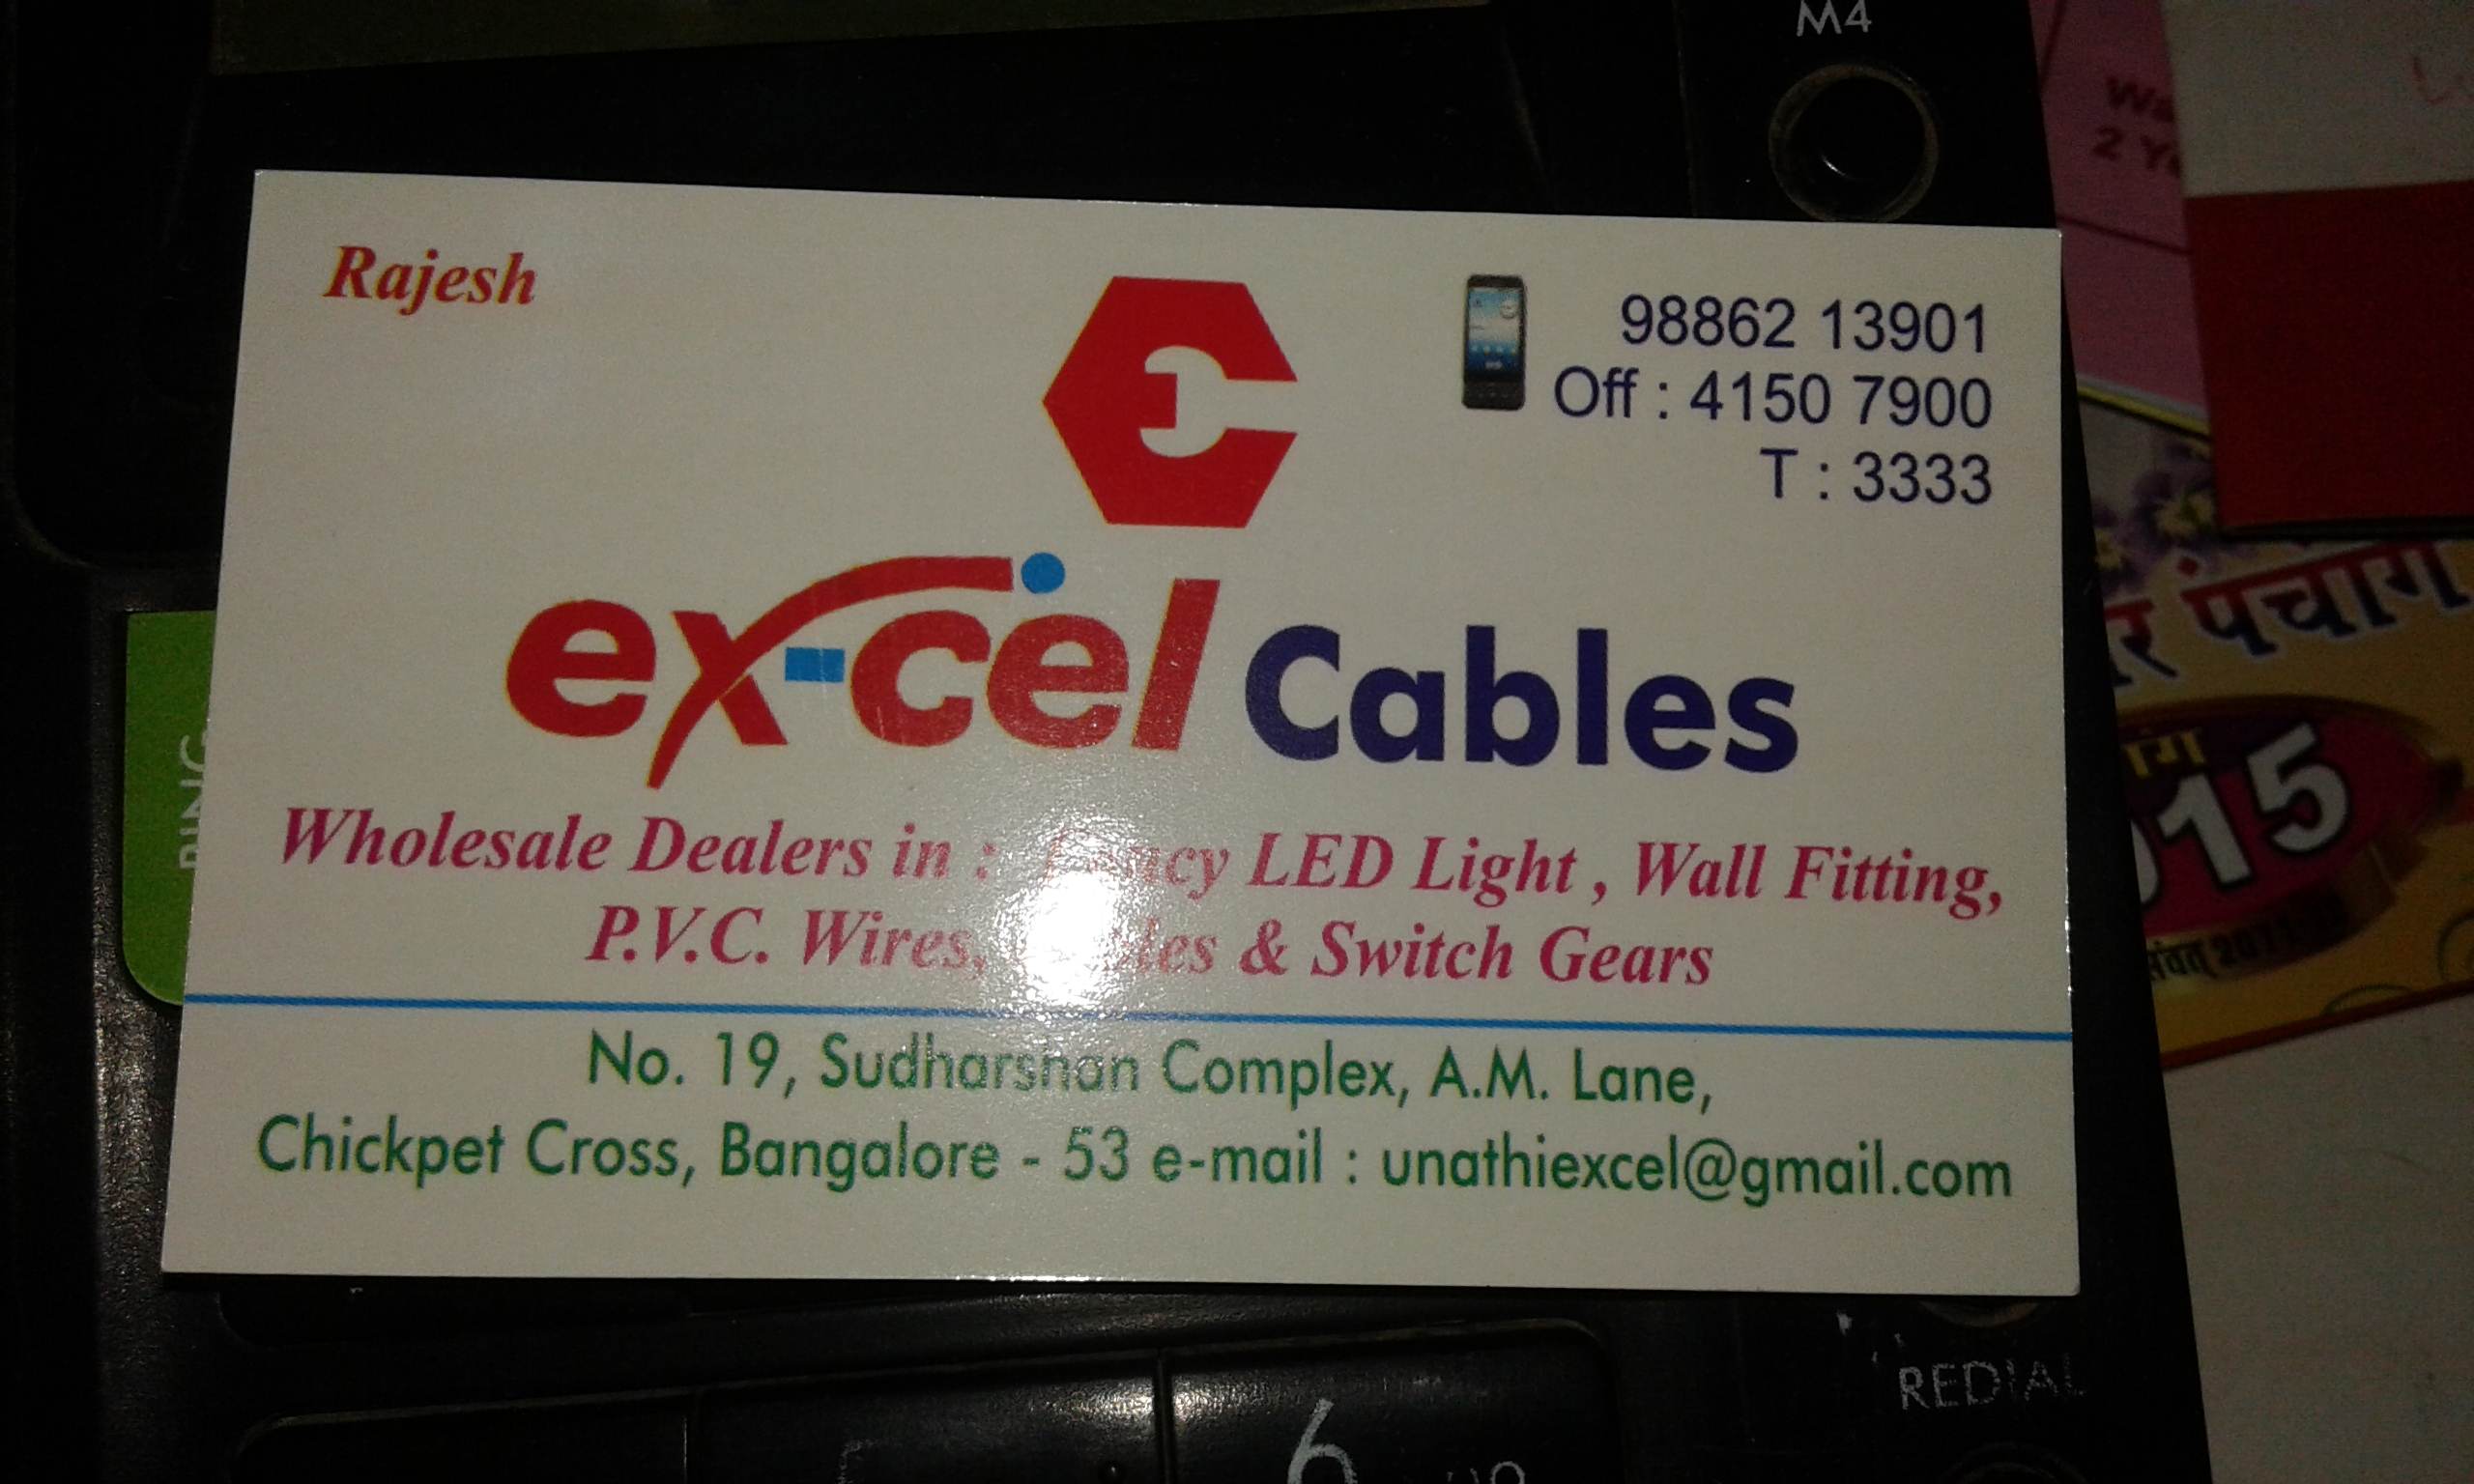 Excel Cables